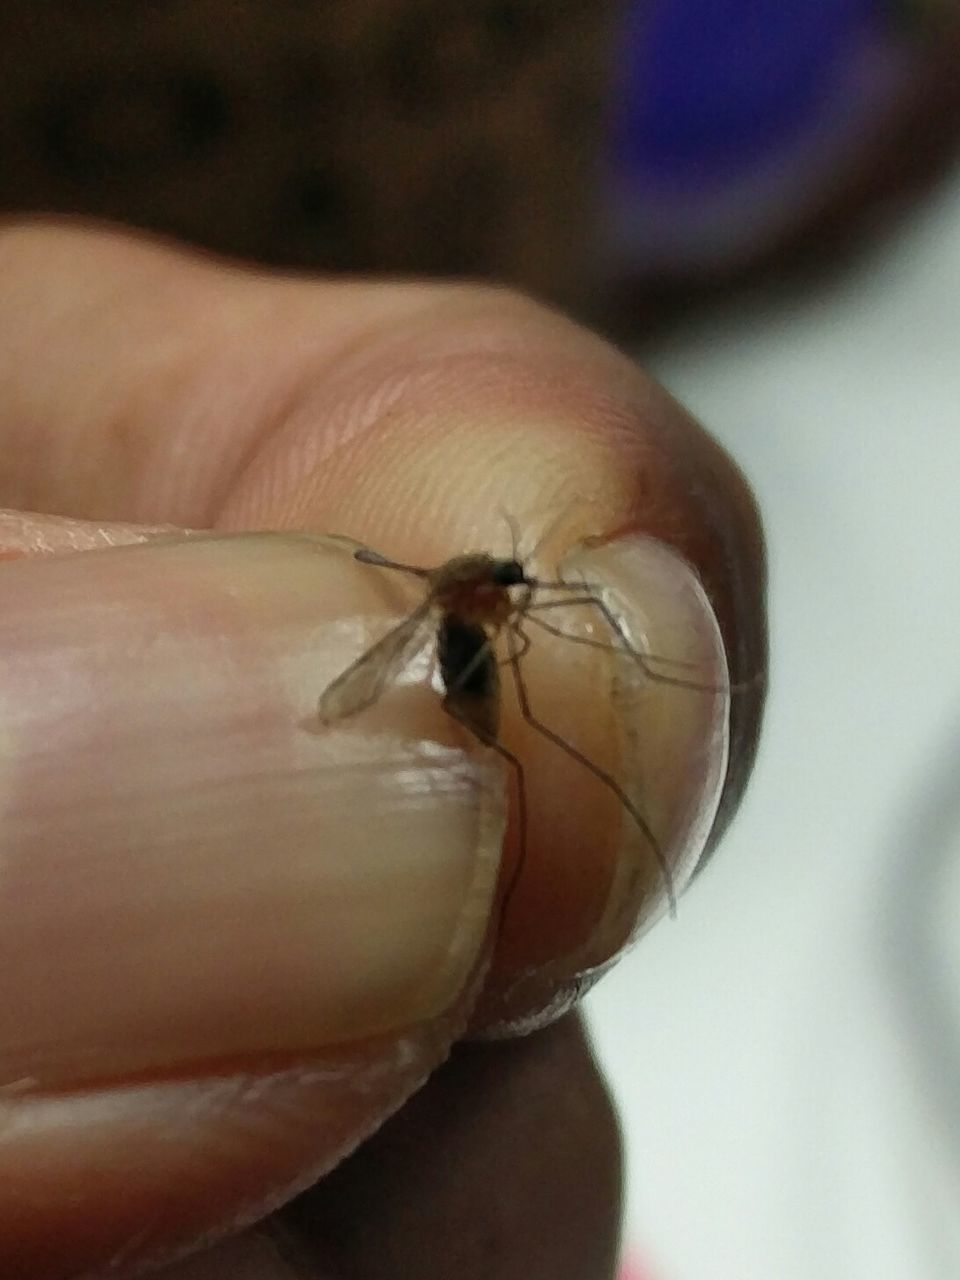 Cropped Image Of Person Holding Dead Mosquito